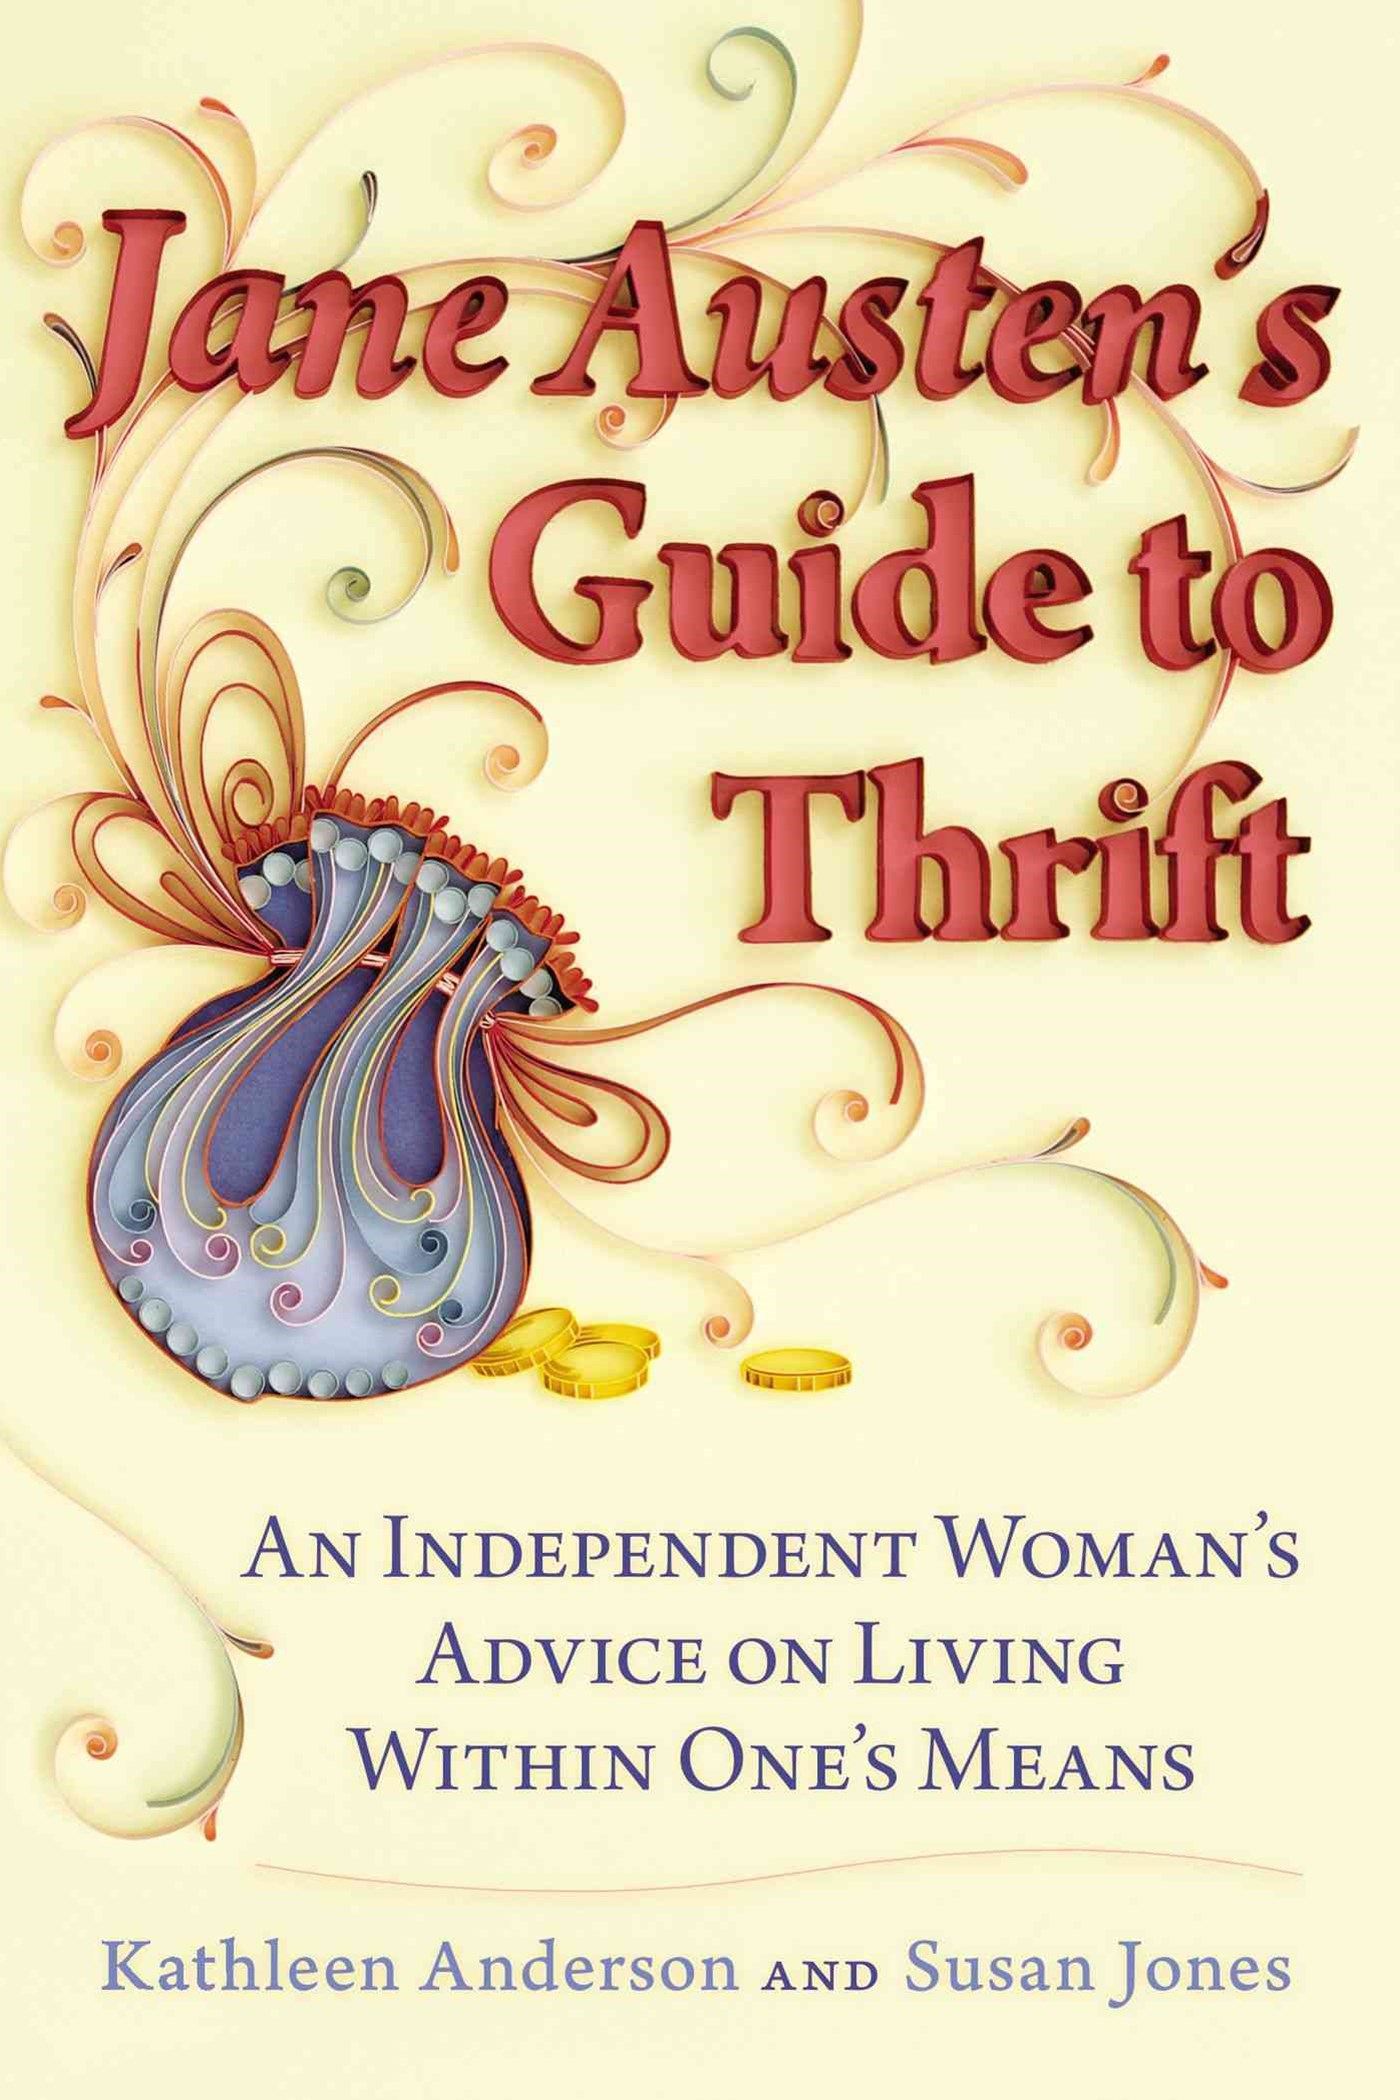 Jane Austen's Guide to Thrift: An Independent Woman's Adviceon Living within One's Means